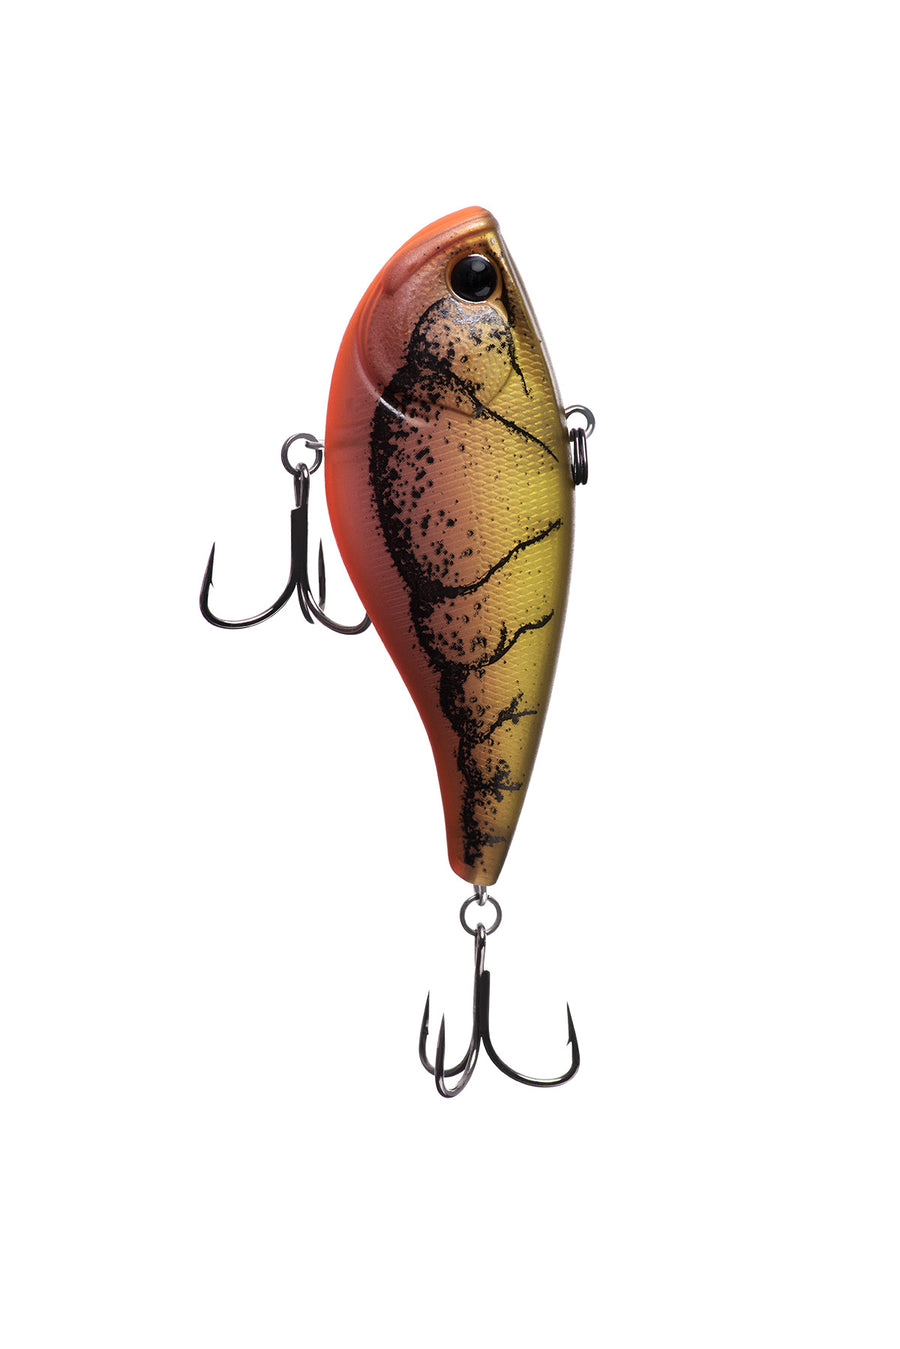 13 Fishing Magic Man Lipless Crankbait - Single Pitch - Direct Fishing Sales